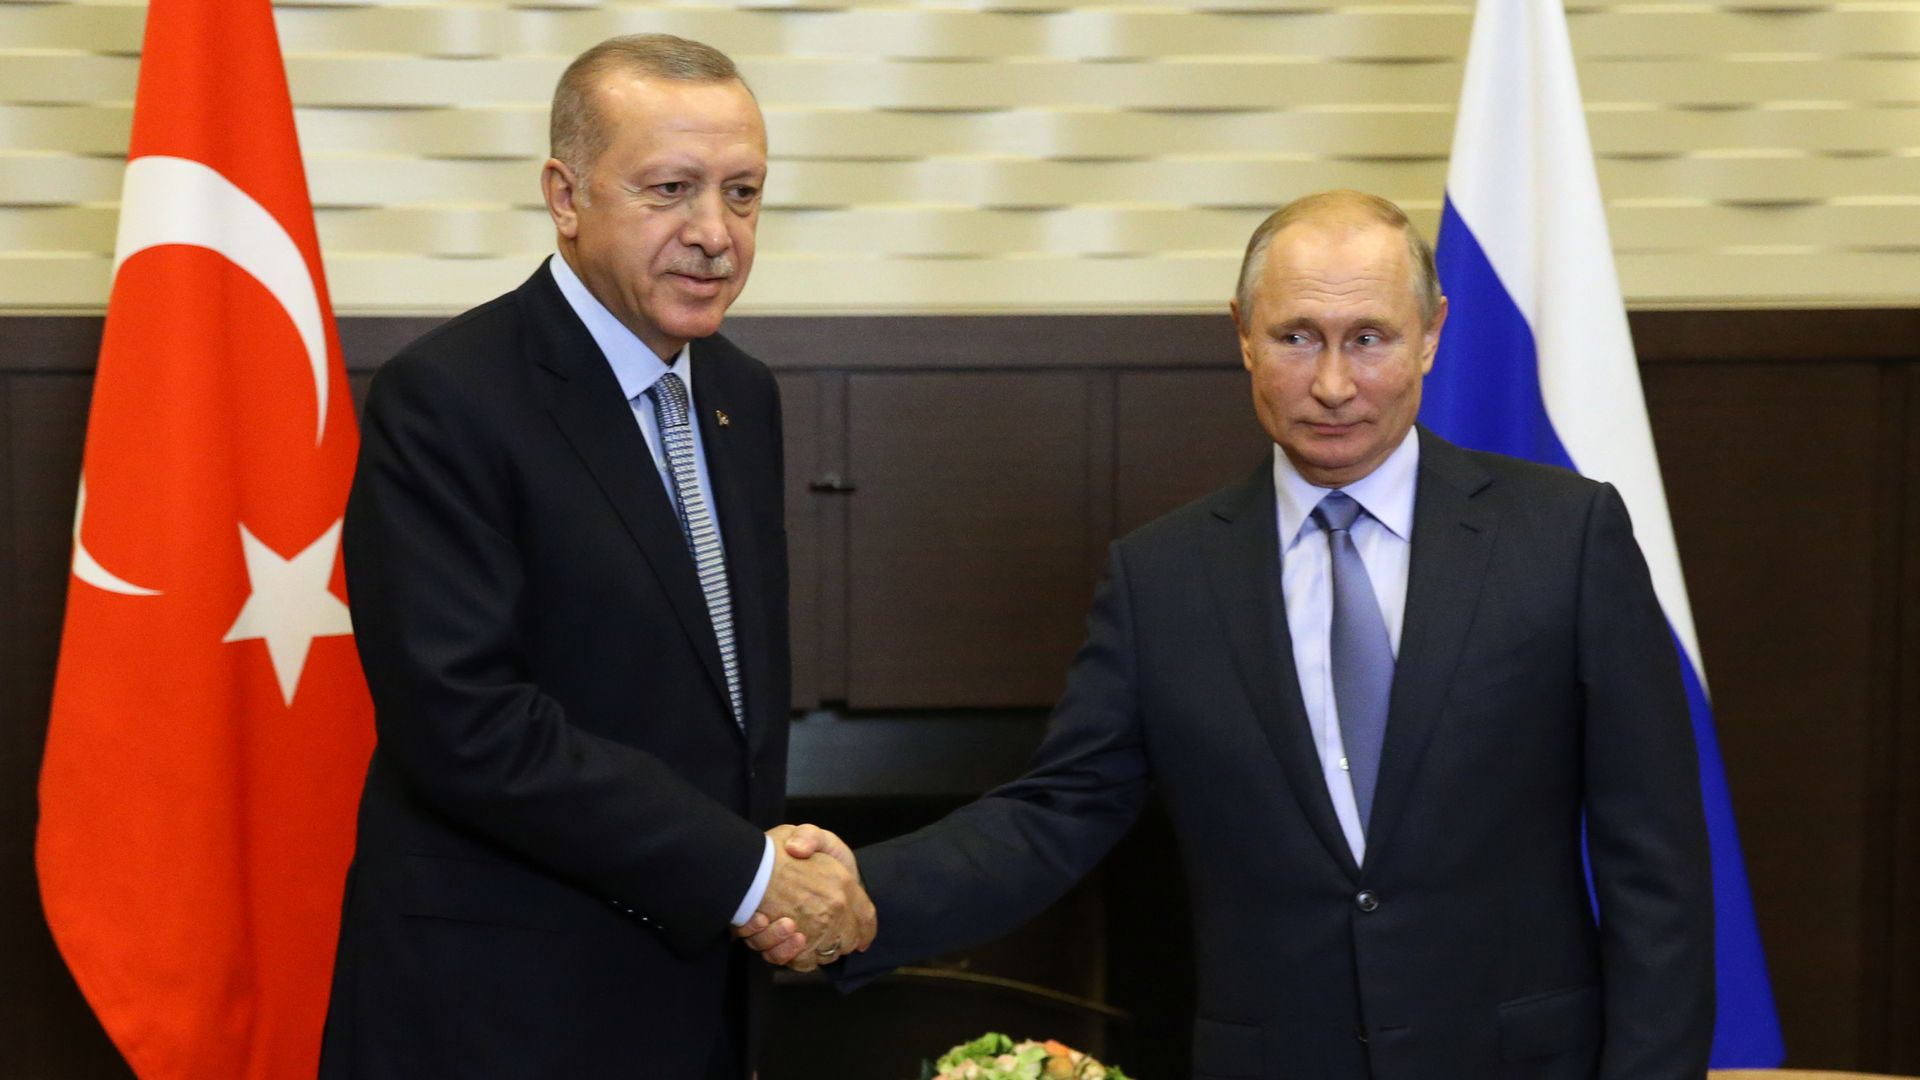 Turkey and Russia agree to Syria buffer zone cleared of Kurdish forces